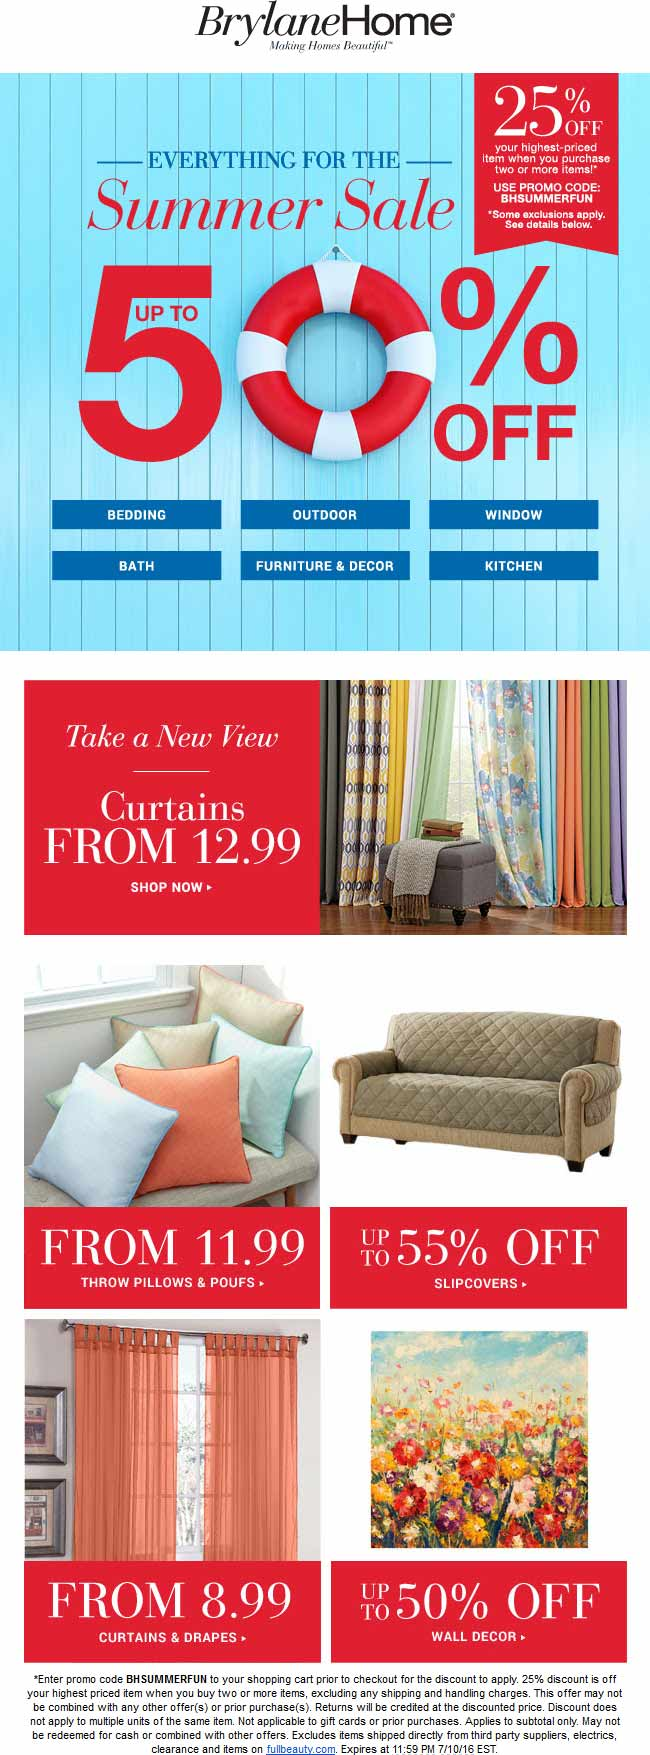 Brylane Home Coupon June 2017 25% off a couple items online at Brylane Home via promo code BHSUMMERFUN